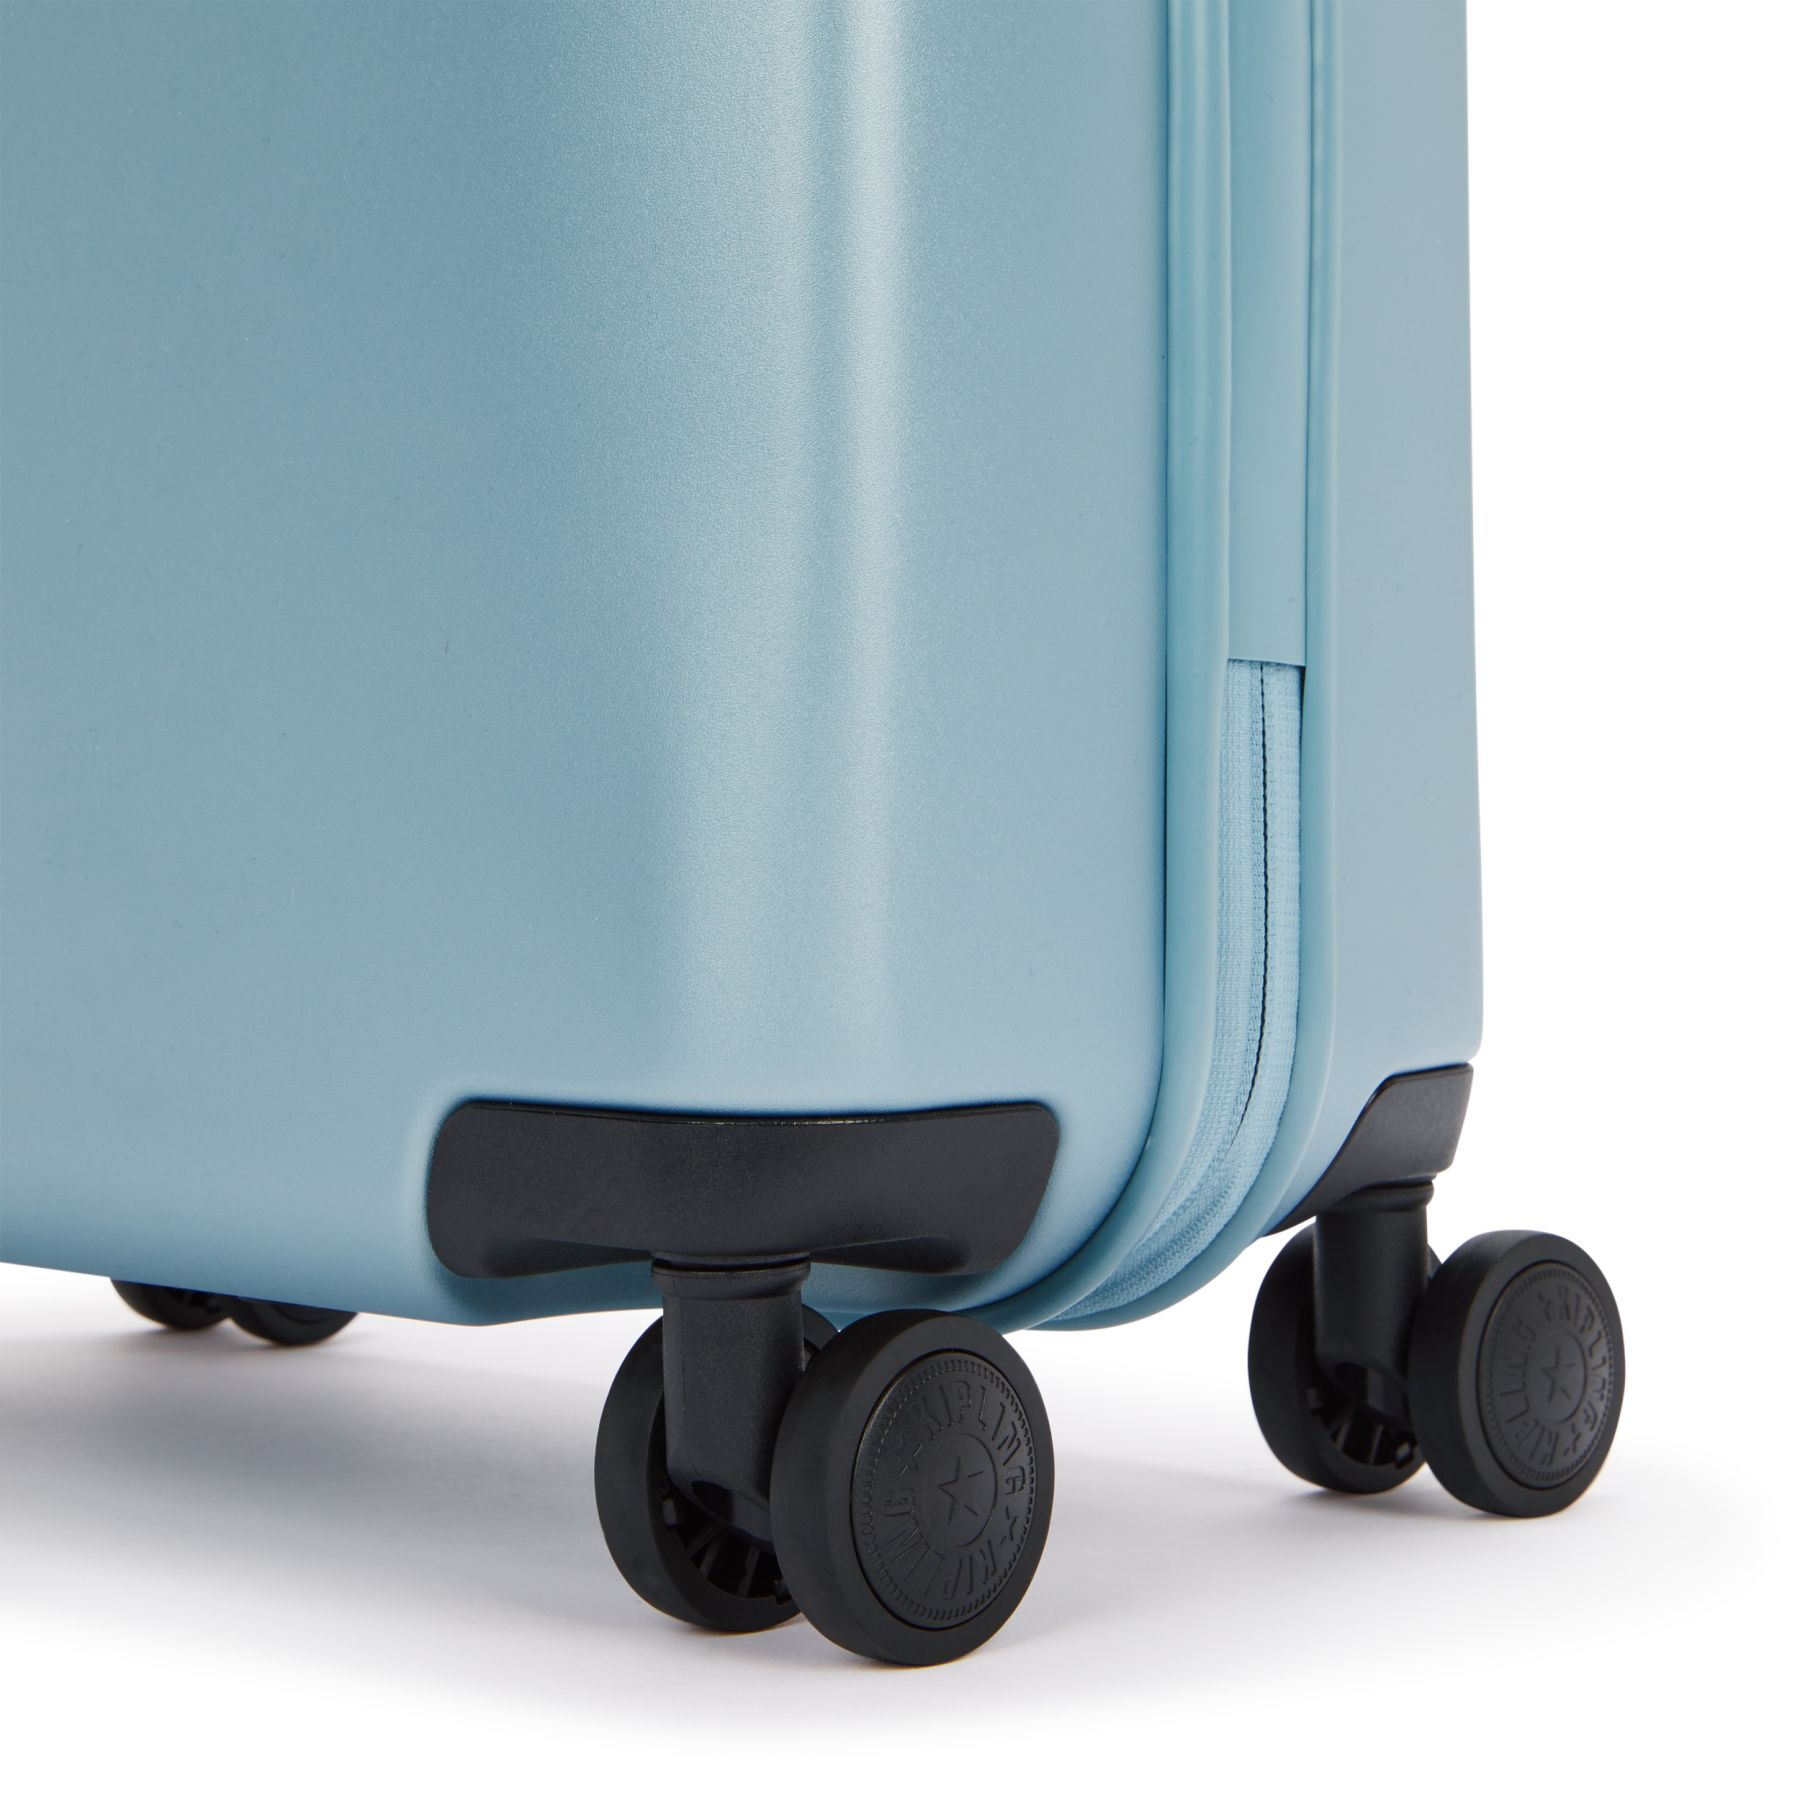 CURIOSITY S LUGGAGE by Kipling